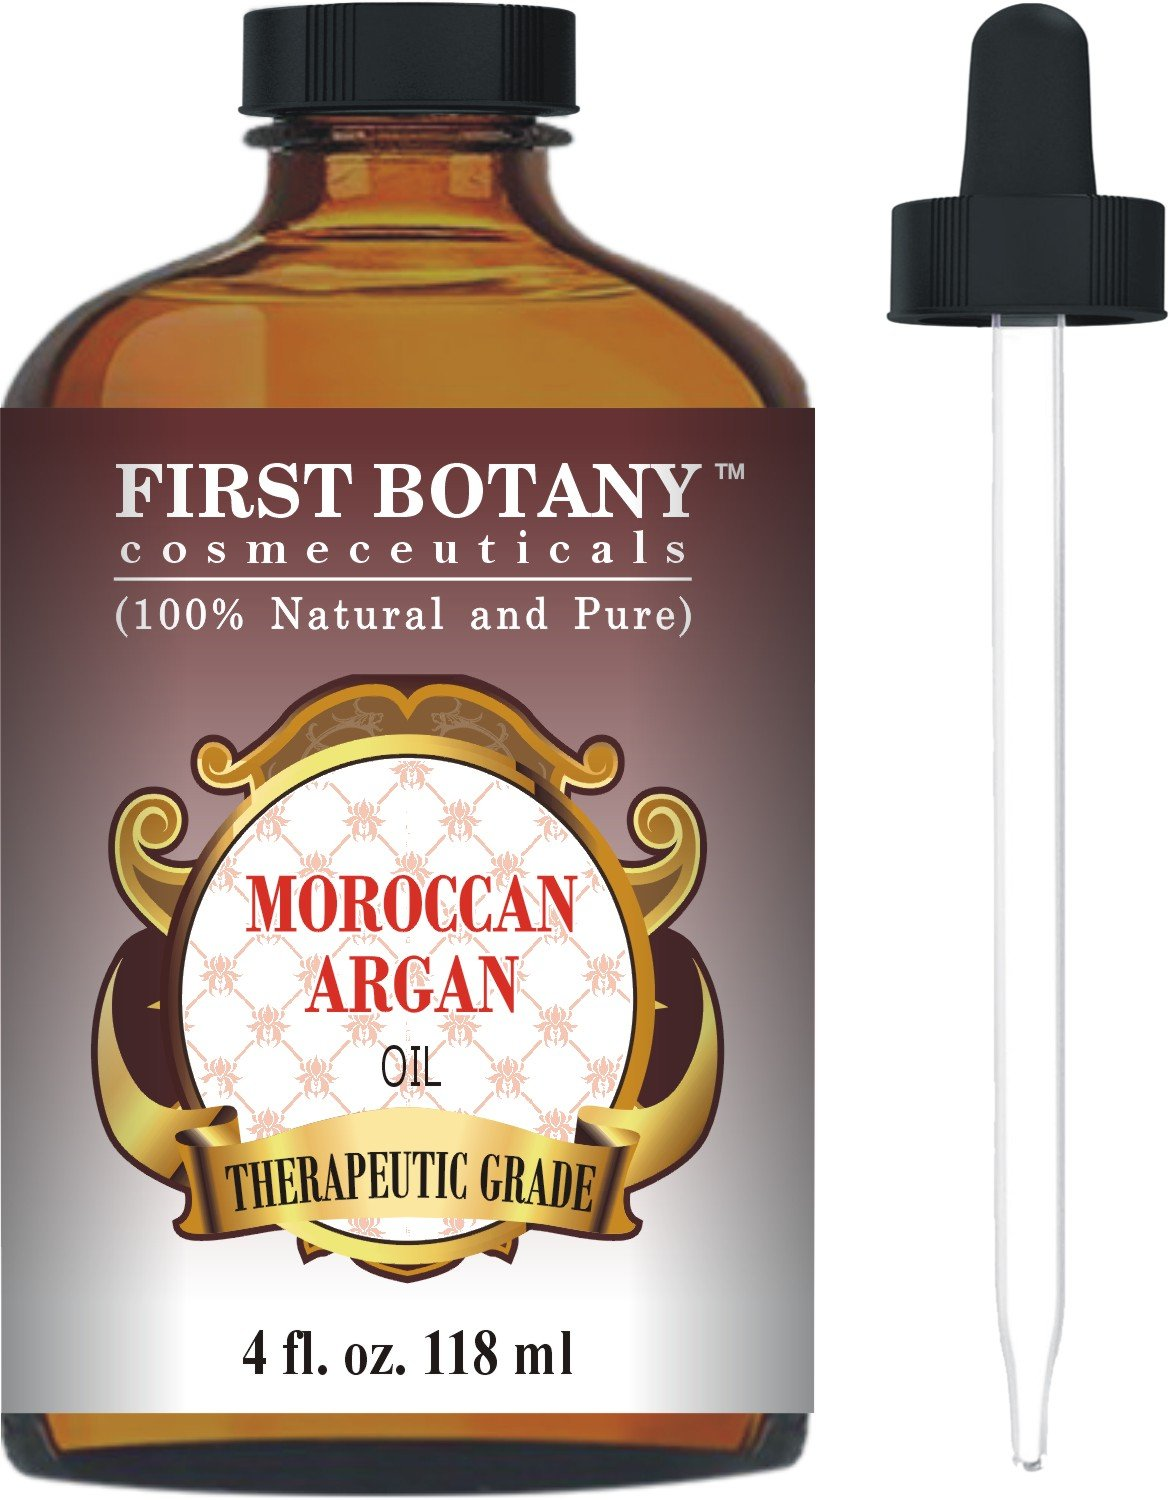 Moroccan Organic Argan Oil For Hair, Skin, Face, Nails, Cuticles & Beard 4 fl. oz. - Best Anti-Aging, Anti-Wrinkle, Triple Extra Virgin & Cold Pressed Moisturizer First Botany Cosmeceuticals